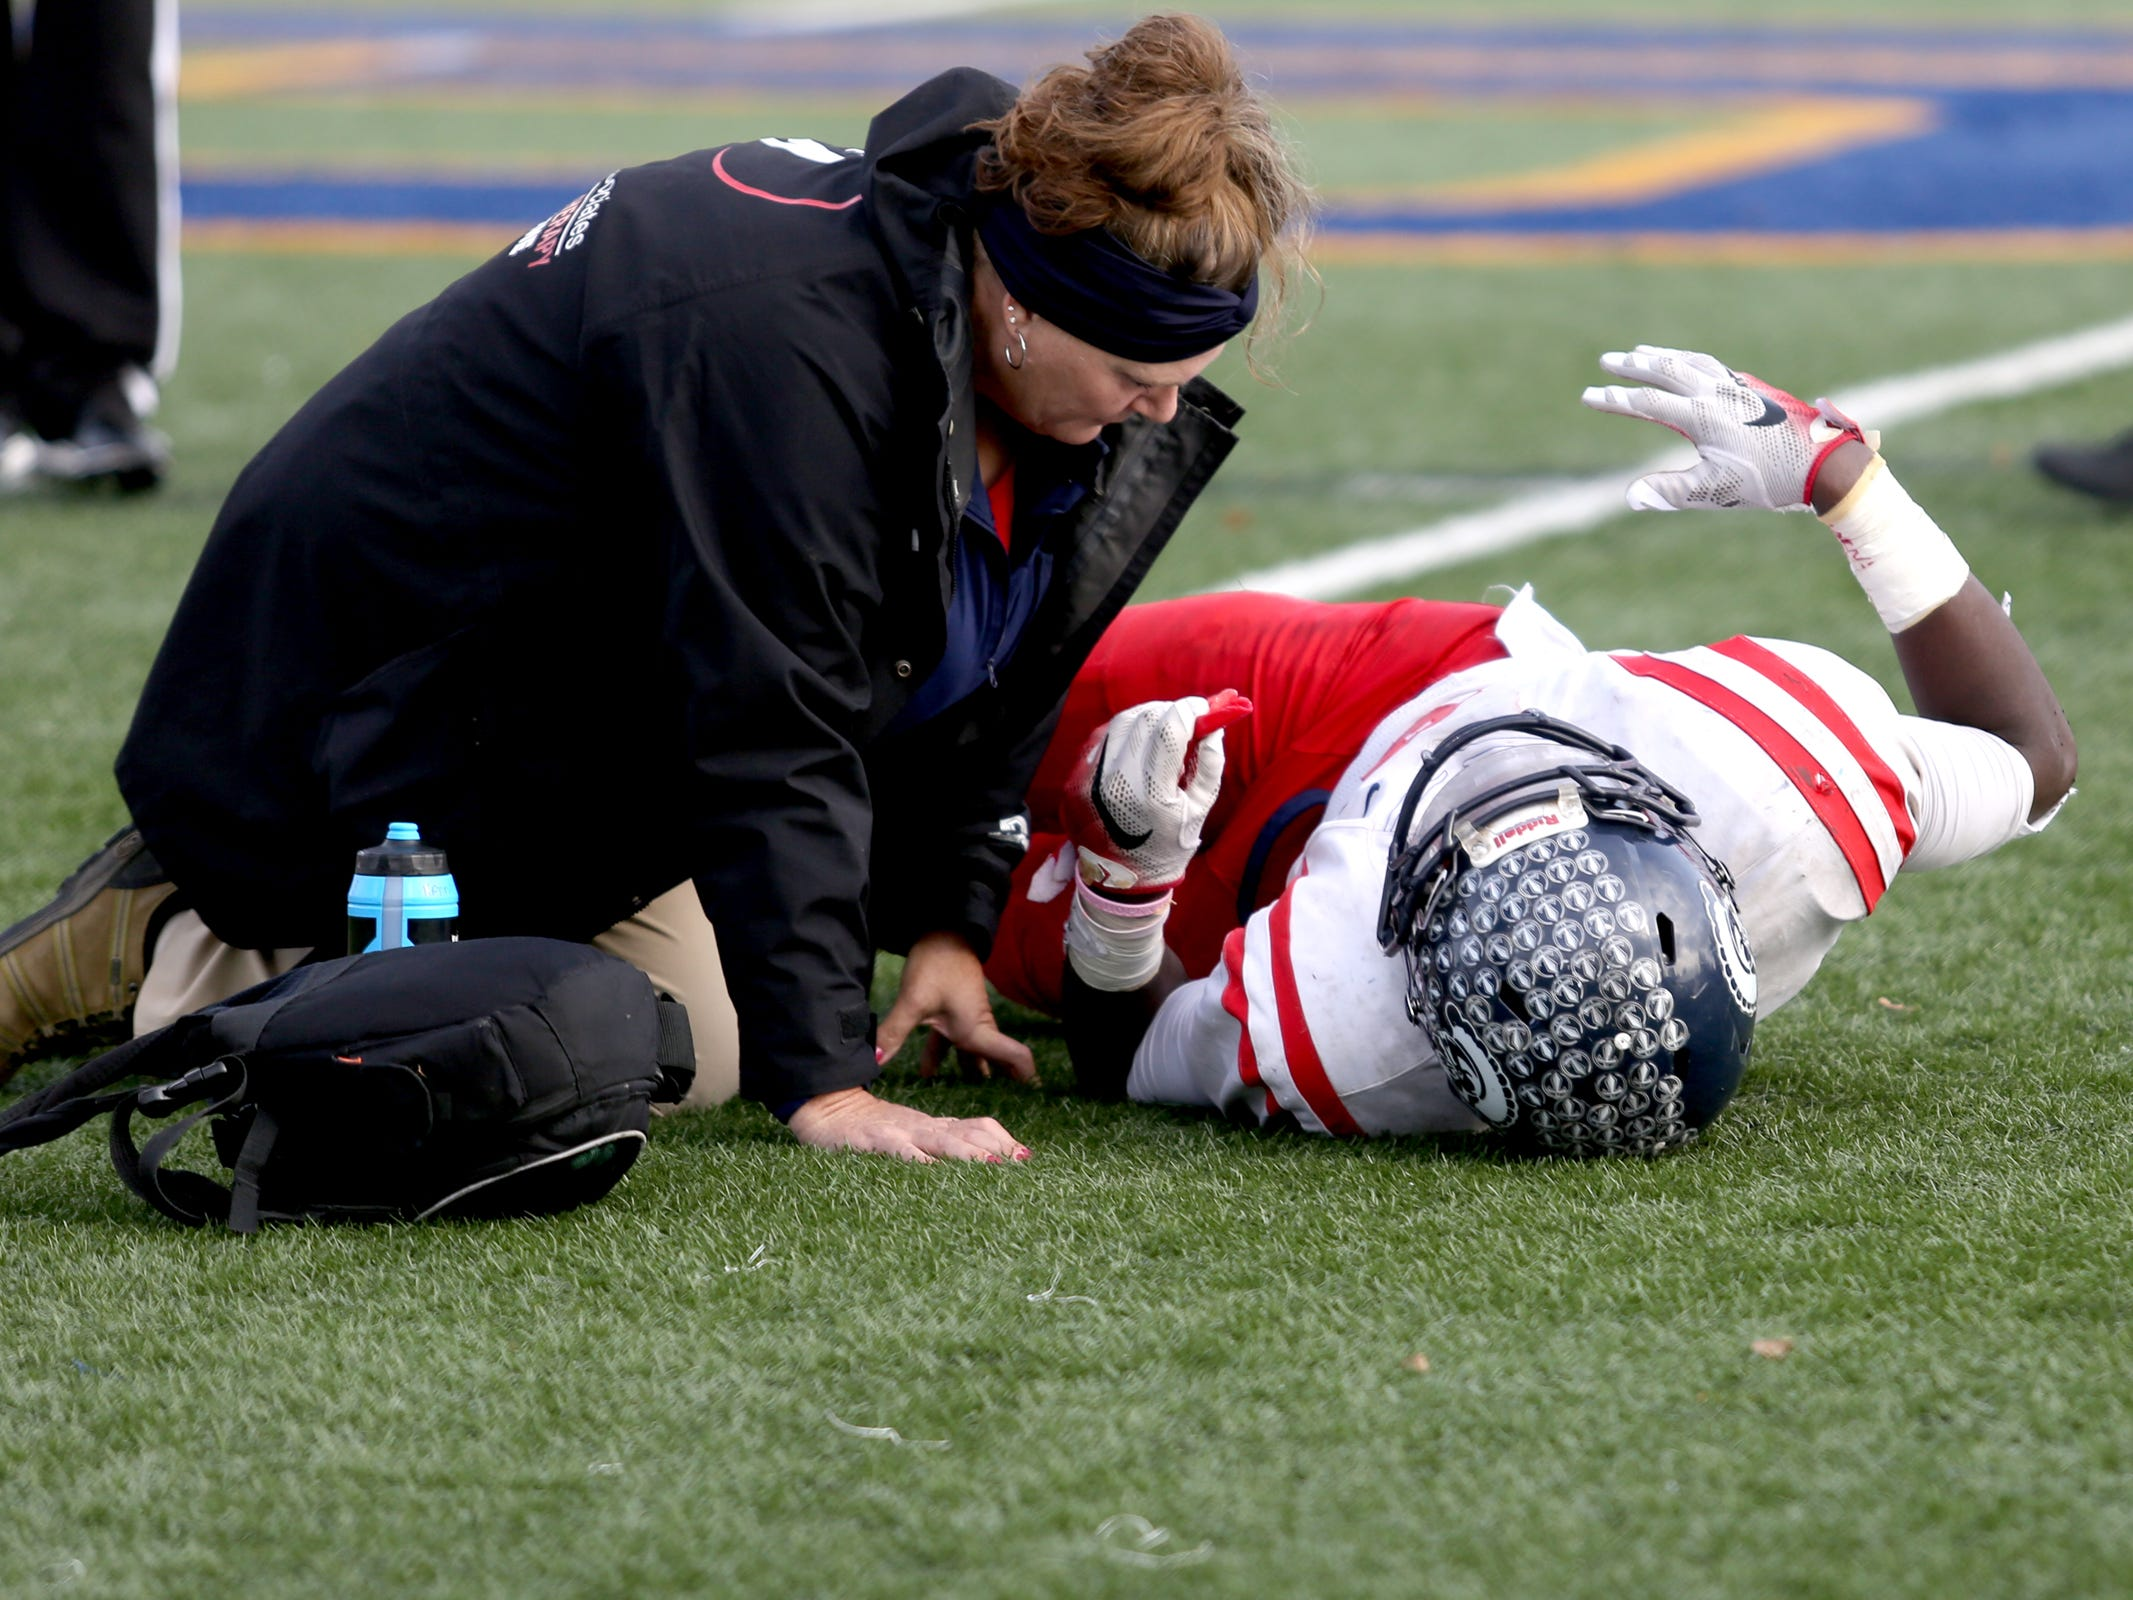 Kennedy's Emorej Lynk (8) is injured during the Kennedy vs. Santiam OSAA Class 2A state championship football game at Cottage Grove High School in Cottage Grove on Saturday, Nov. 24, 2018.